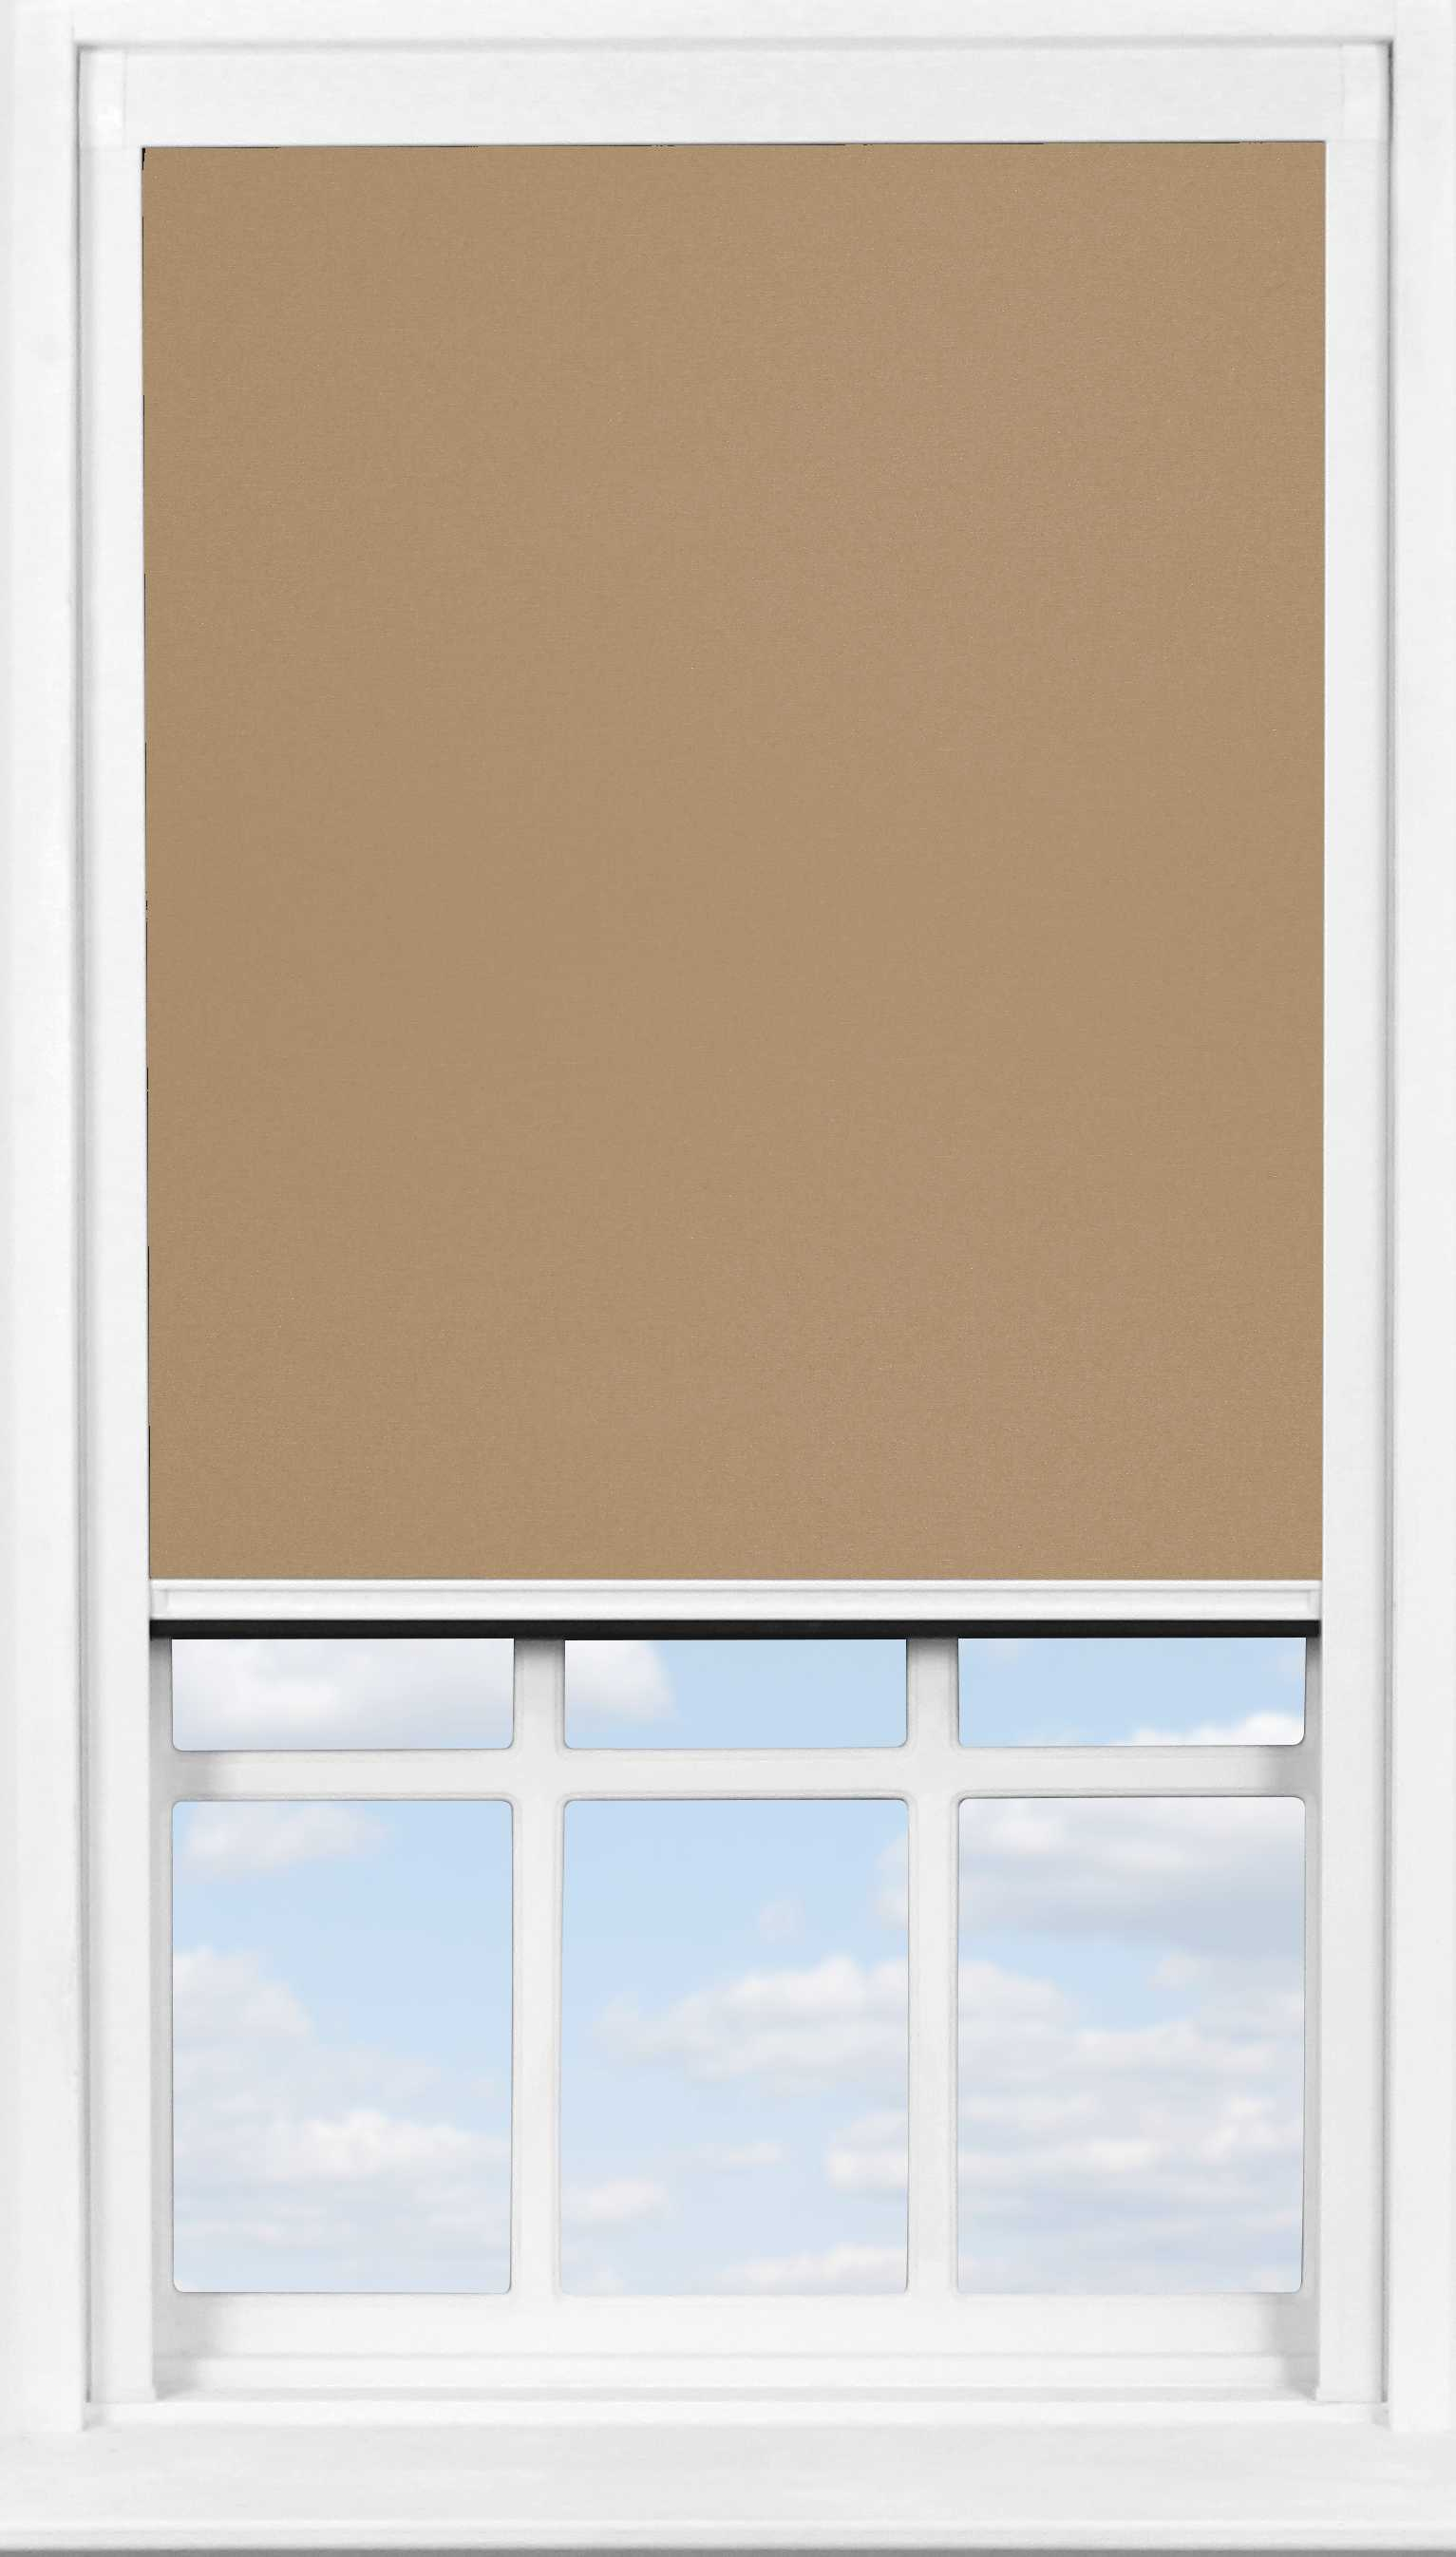 black sizes uk gen fast samplecoconut blackoutblocout blind husk from blocout halfclosed bloc order roller delivery blinds at online buy standard window out free